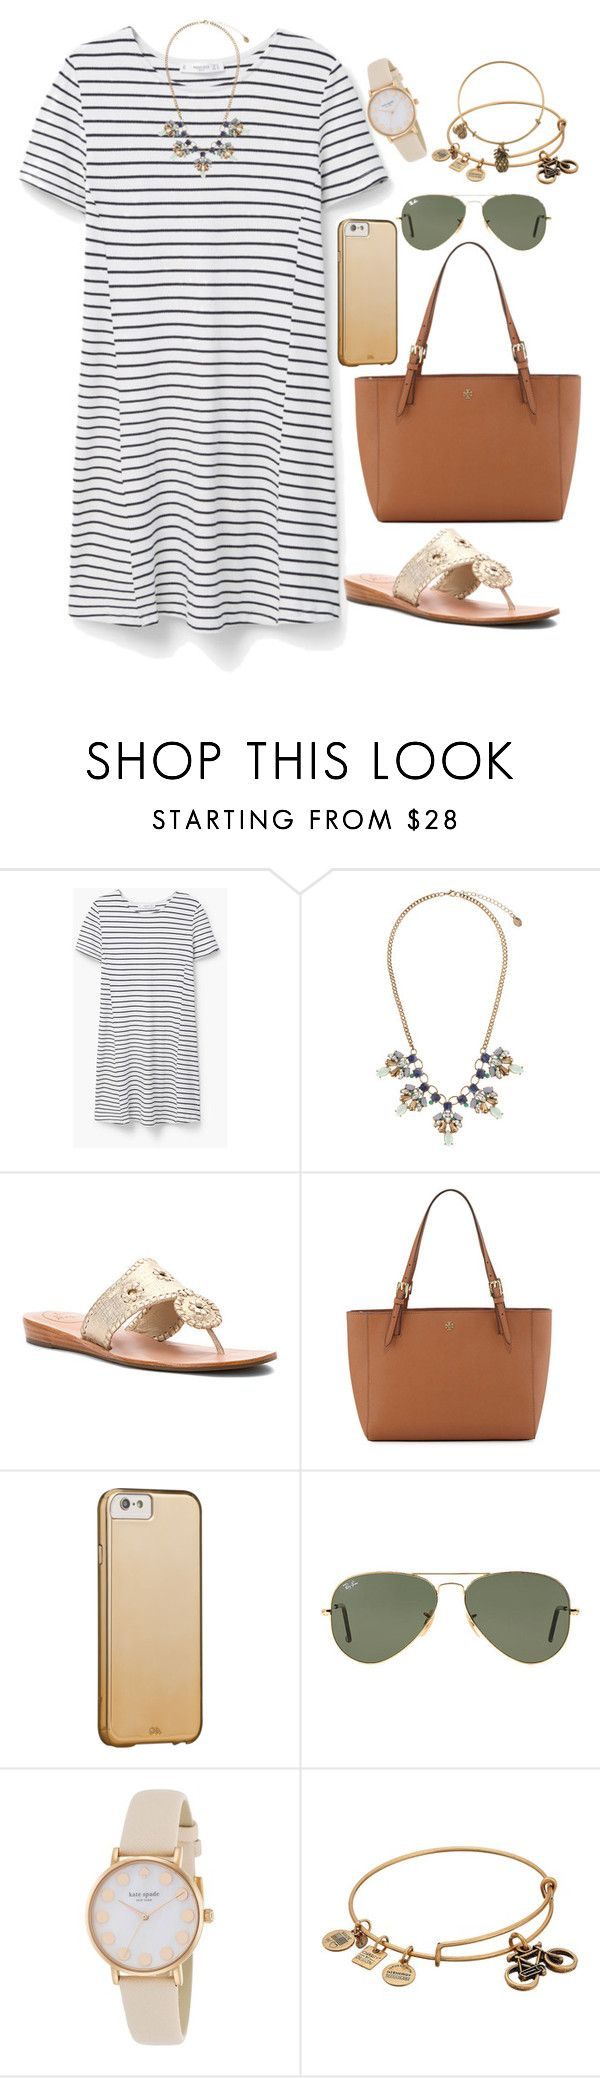 """a friend loves at all times. Proverbs 17:17"" by isabella813 ❤ liked on Polyvore featuring MANGO, Accessorize, Jack Rogers, Tory Burch, Ray-Ban, Kate Spade and Alex and Ani"